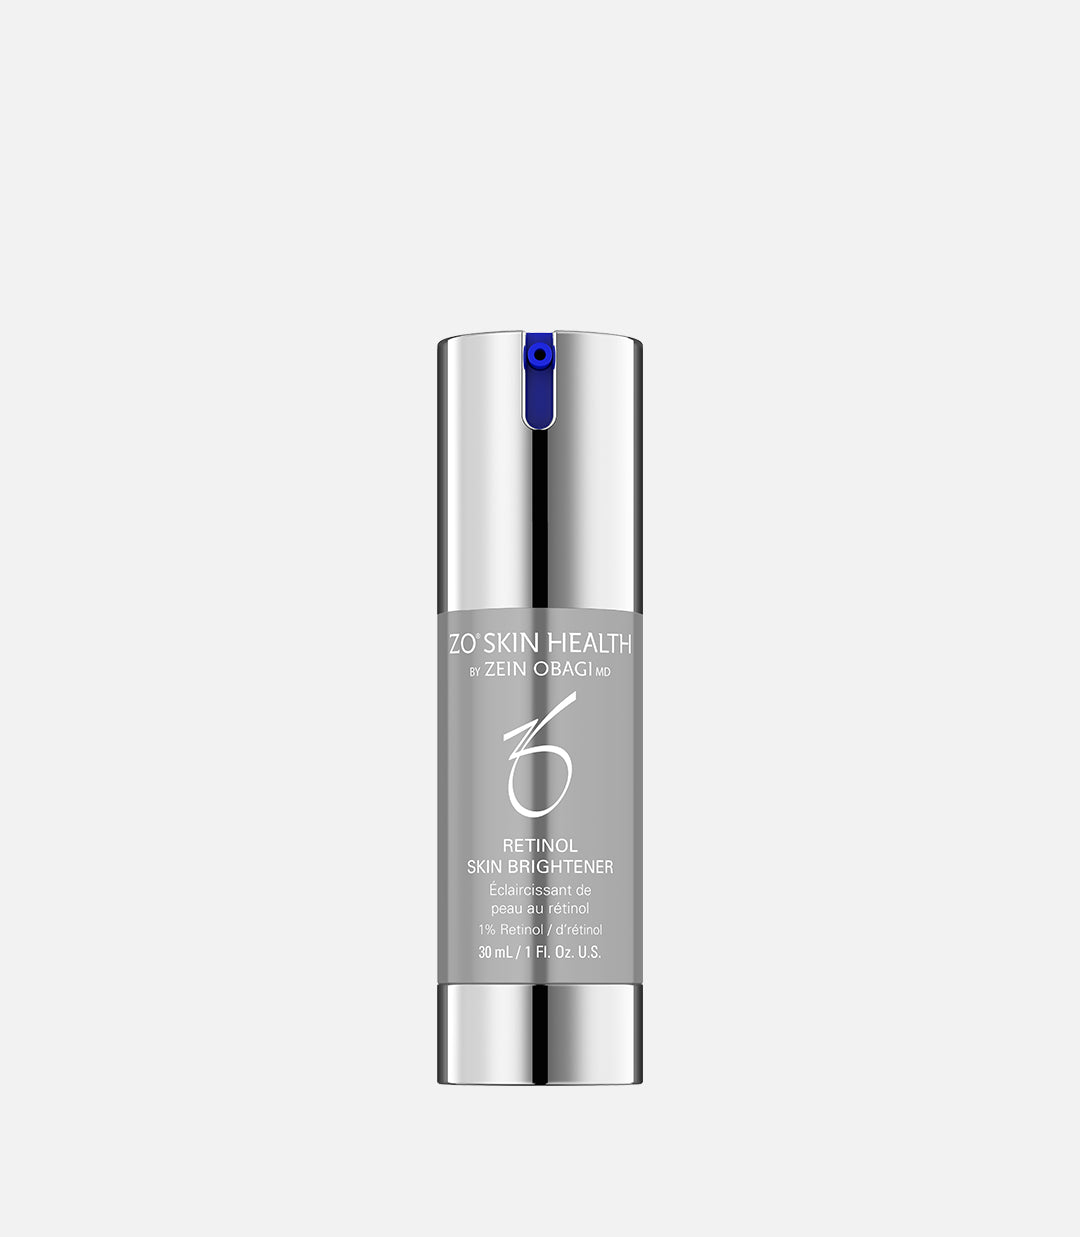 Retinol Skin Brightener 1% (travel size)